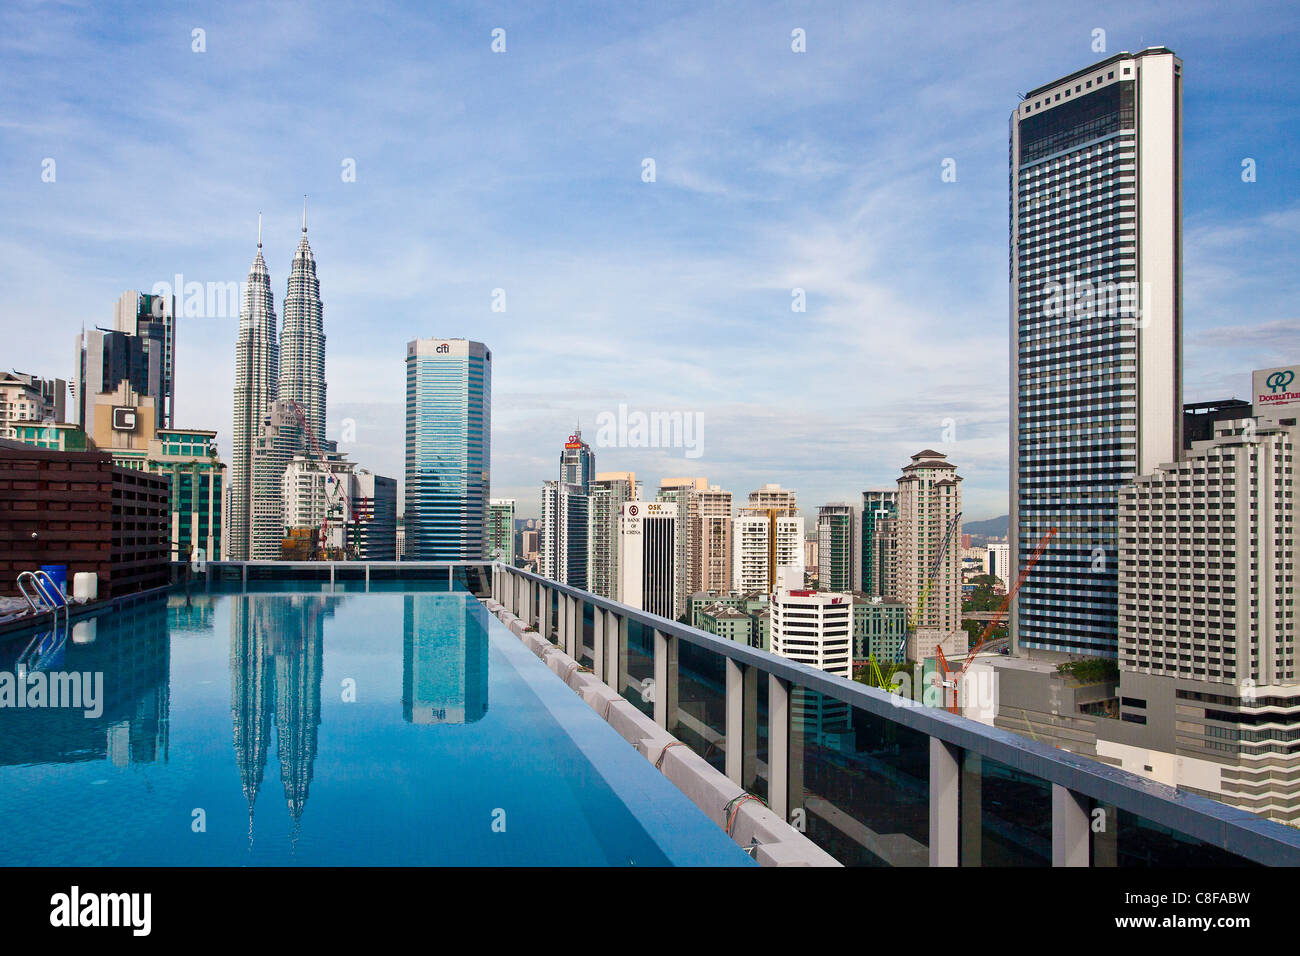 Malaysia, Asia, Kuala Lumpur, Golden Triangle District, Petronas Towers, blocks of flats, high-rise buildings, Skyline, - Stock Image